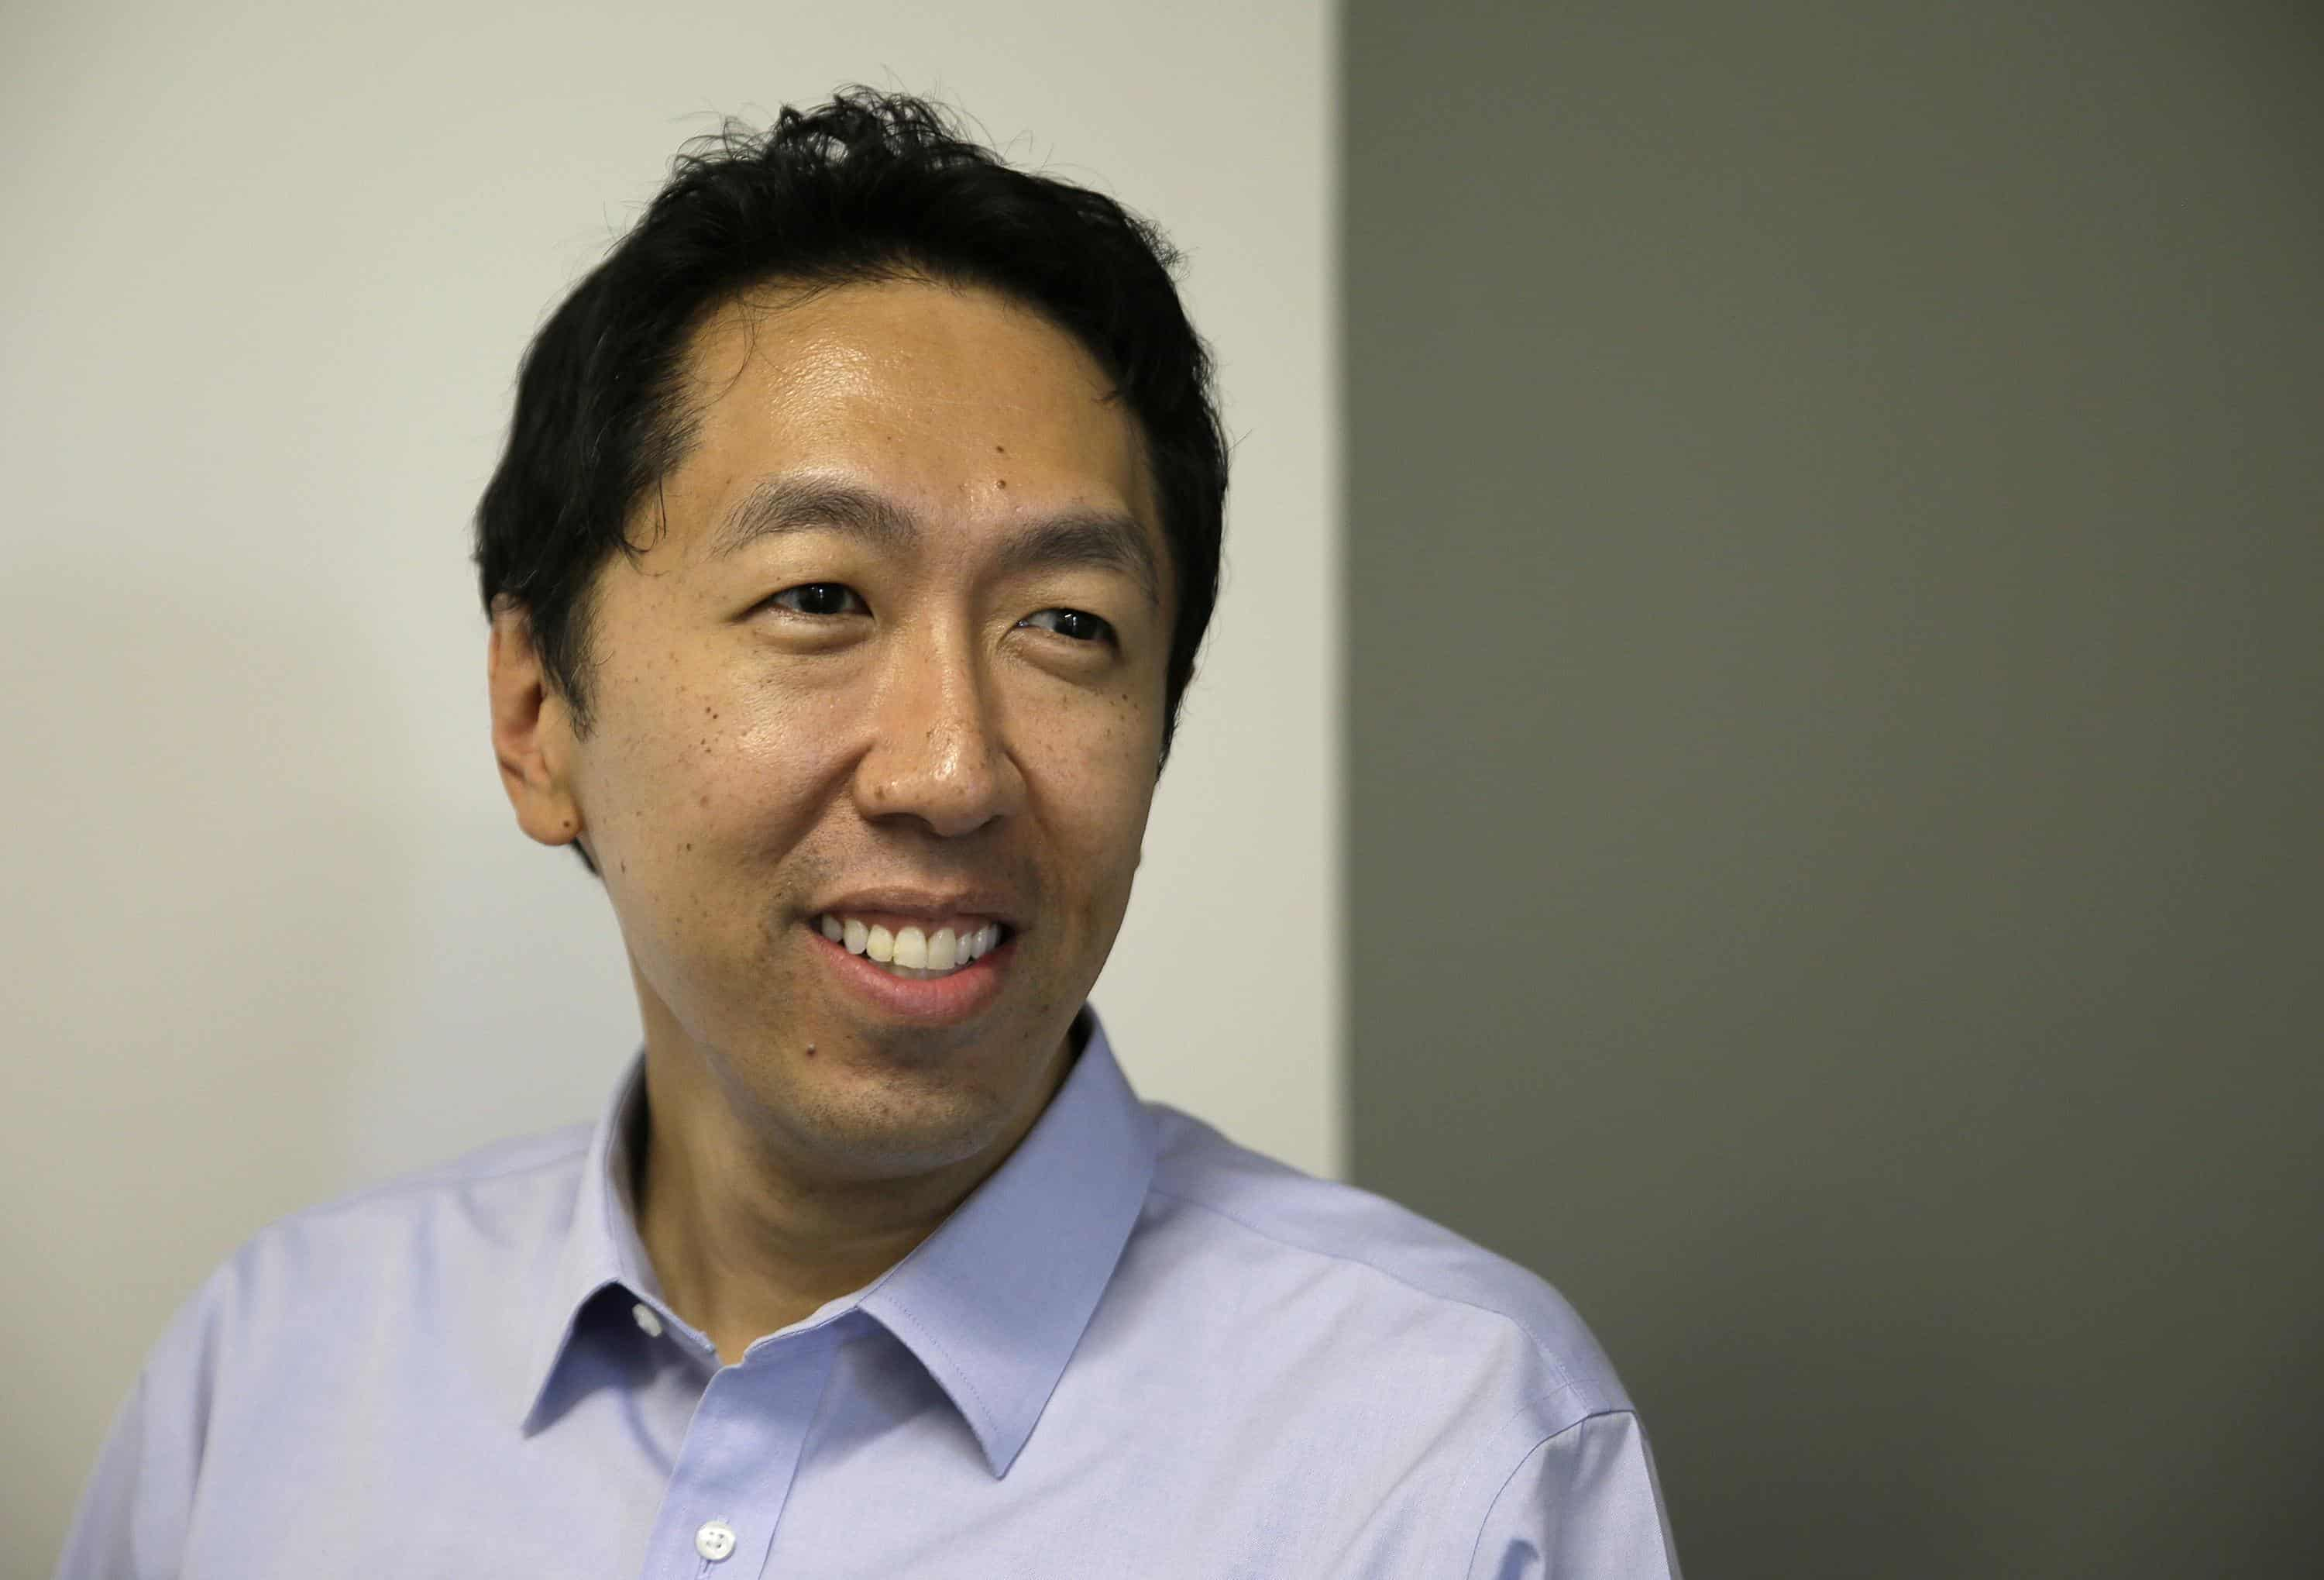 Back by popular demand: Machine Learning with founder Andrew Ng